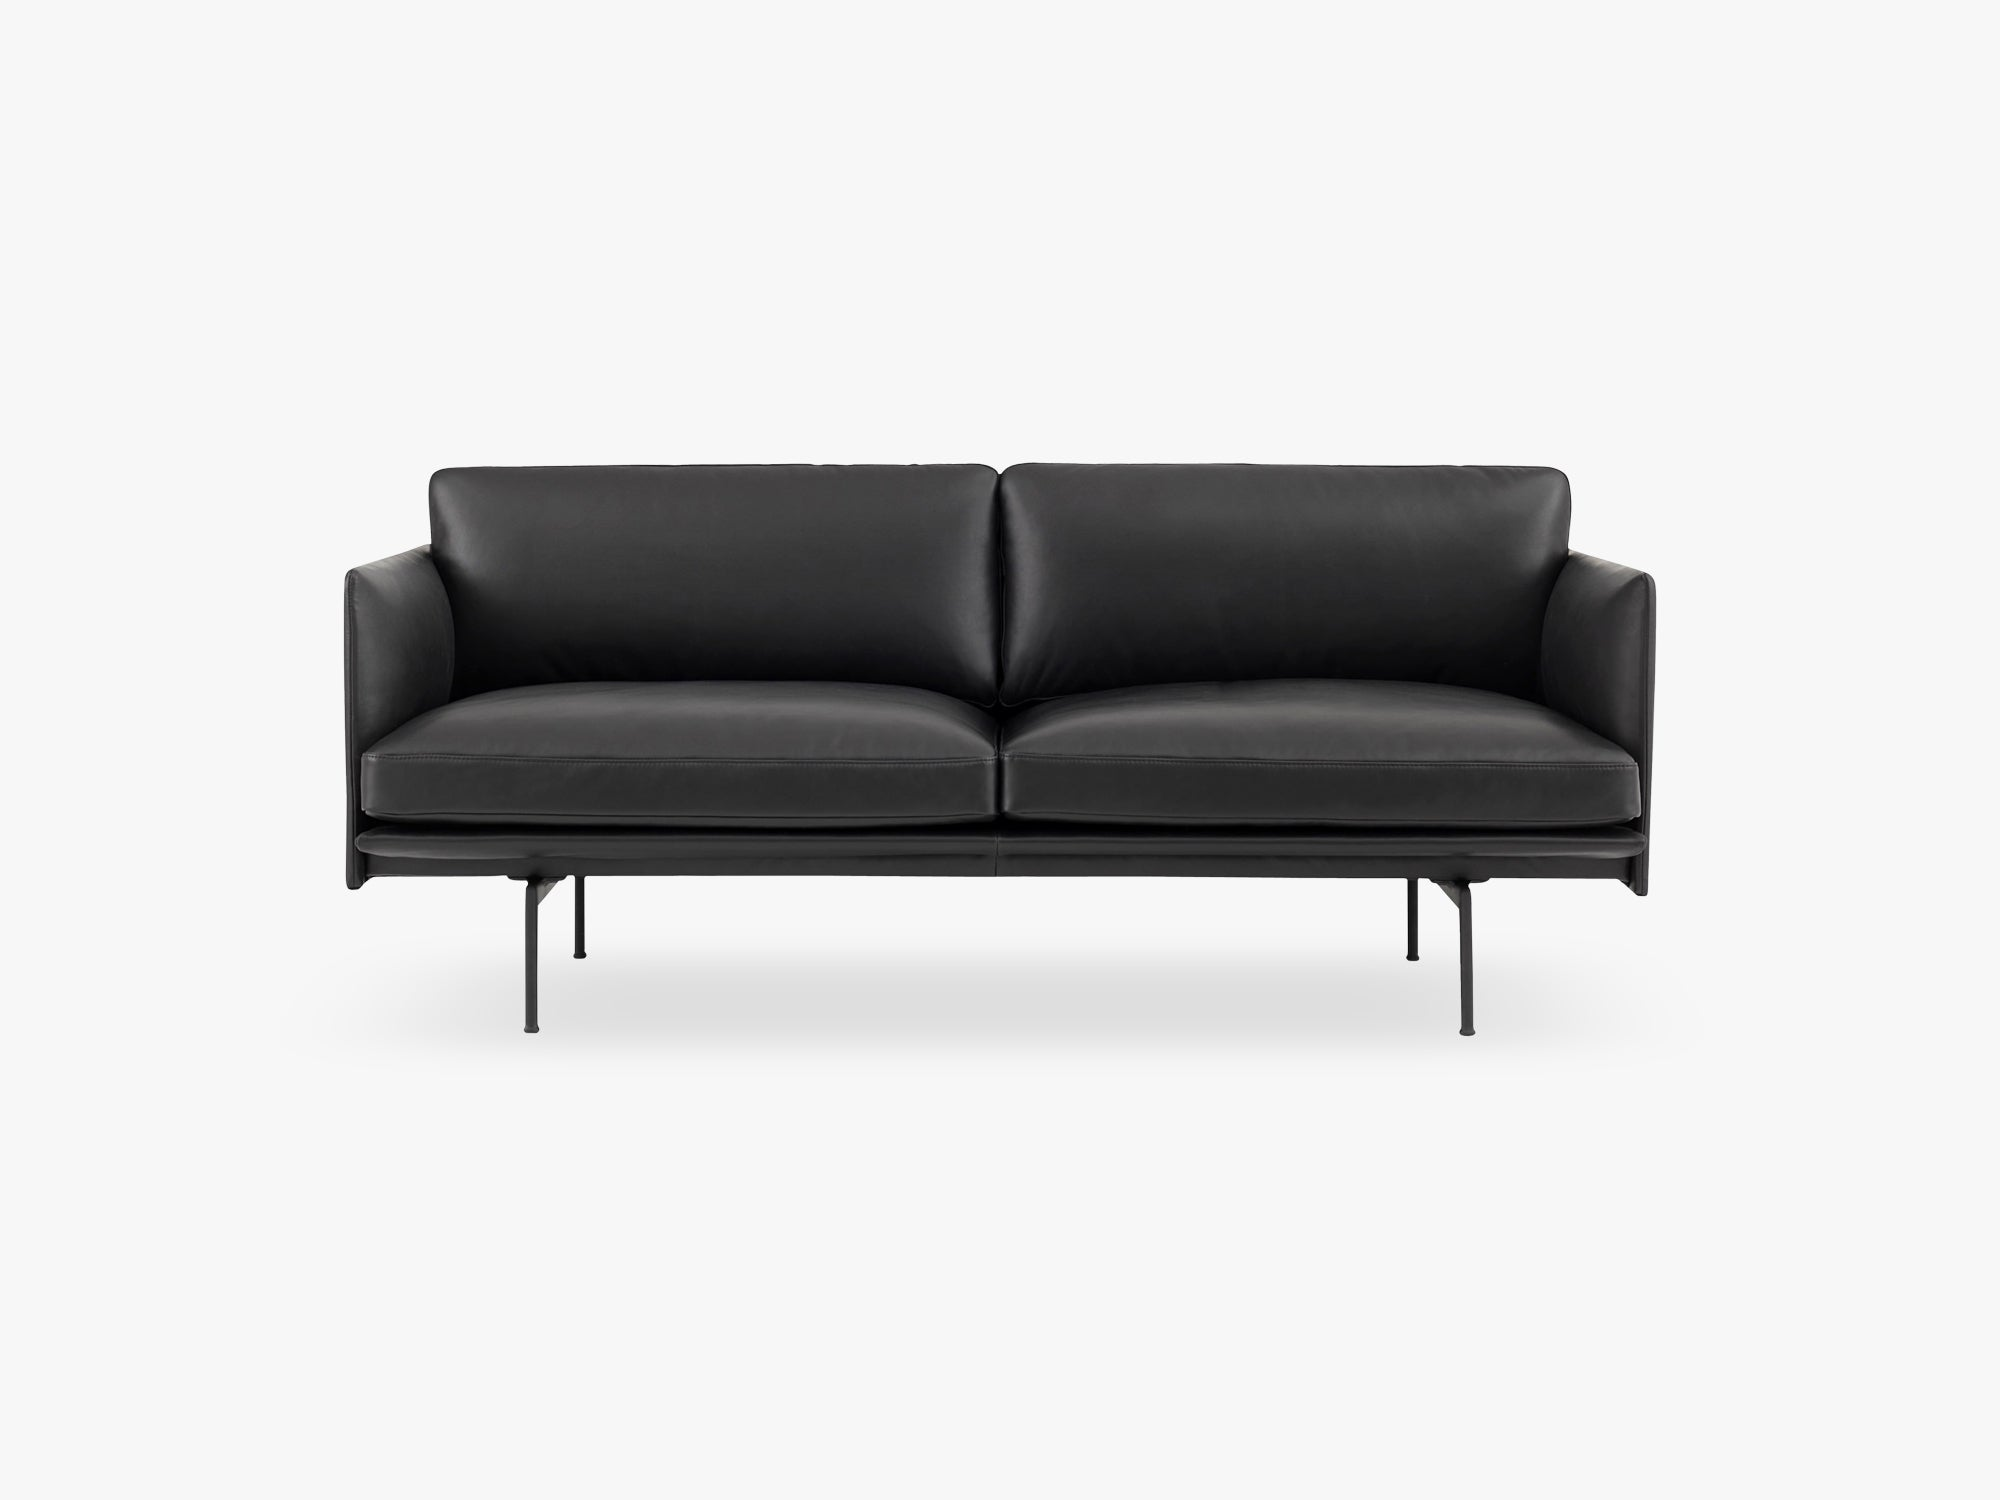 Outline Sofa - 2-Seater, Silk Leather - Black fra Muuto